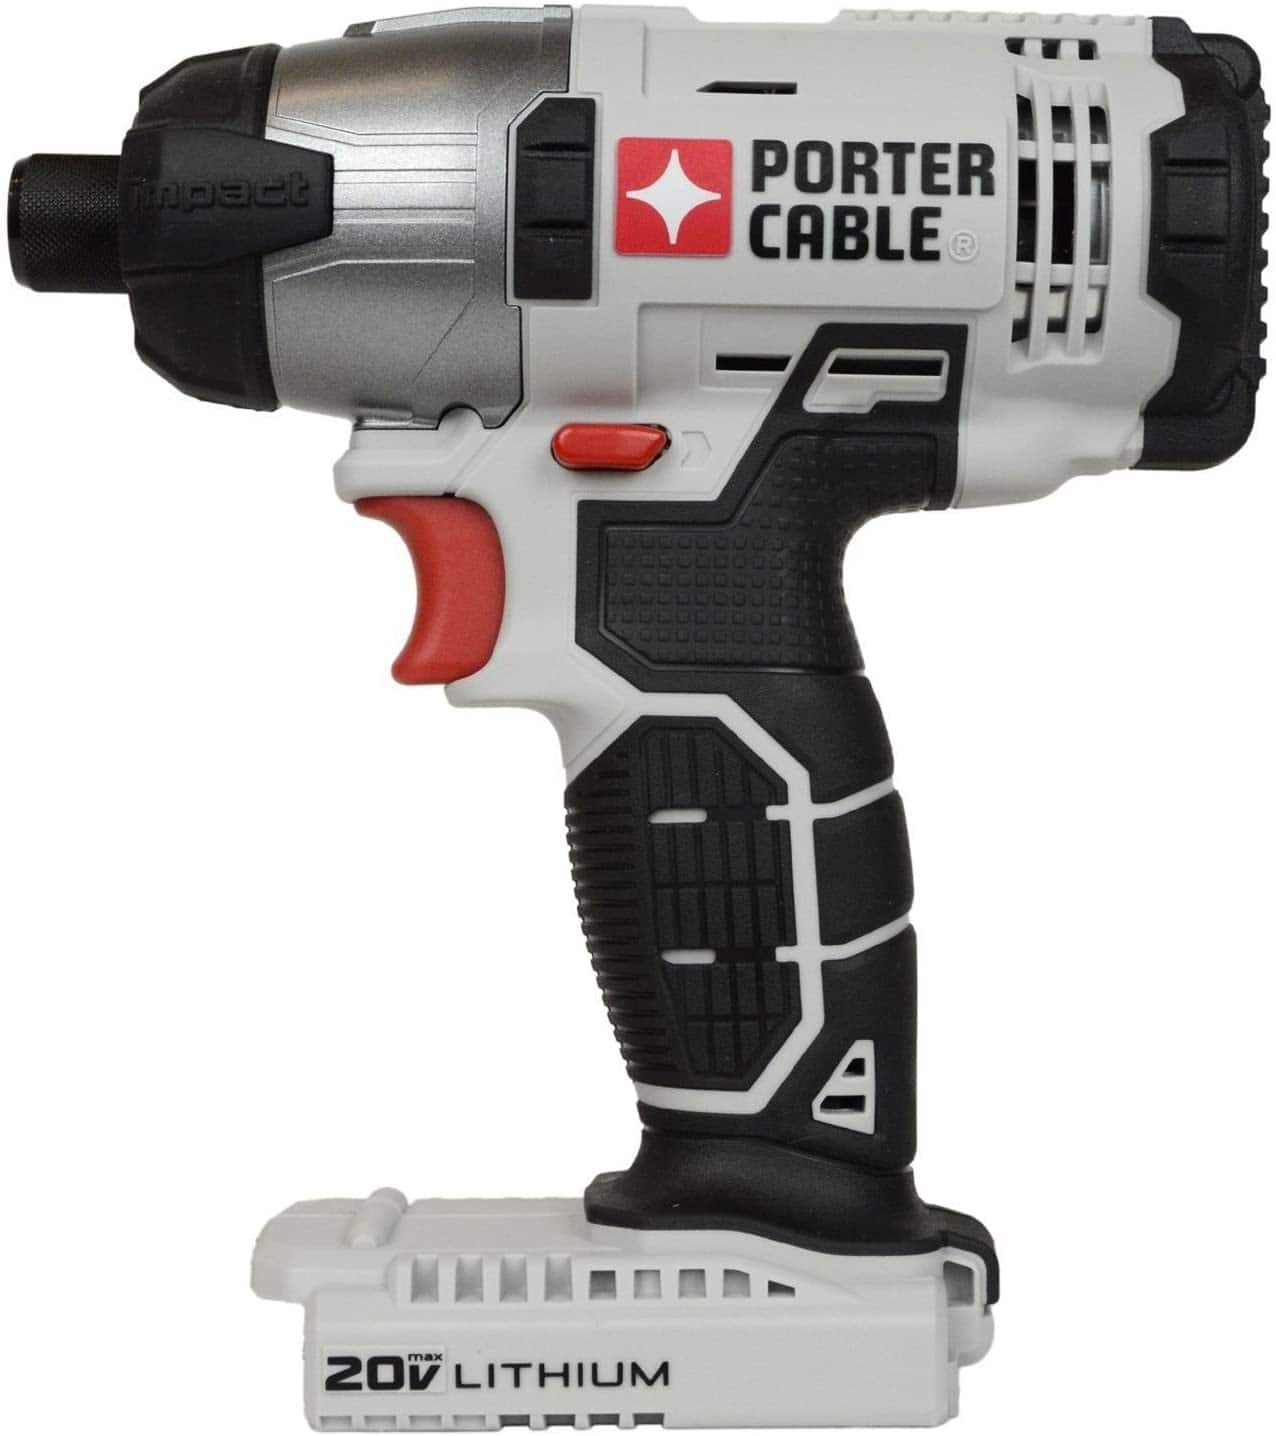 "Porter Cable 20-Volt 1/4"" Cordless Variable Speed Impact Driver with Socket Adapters $71.95 + Free Store Pickup"